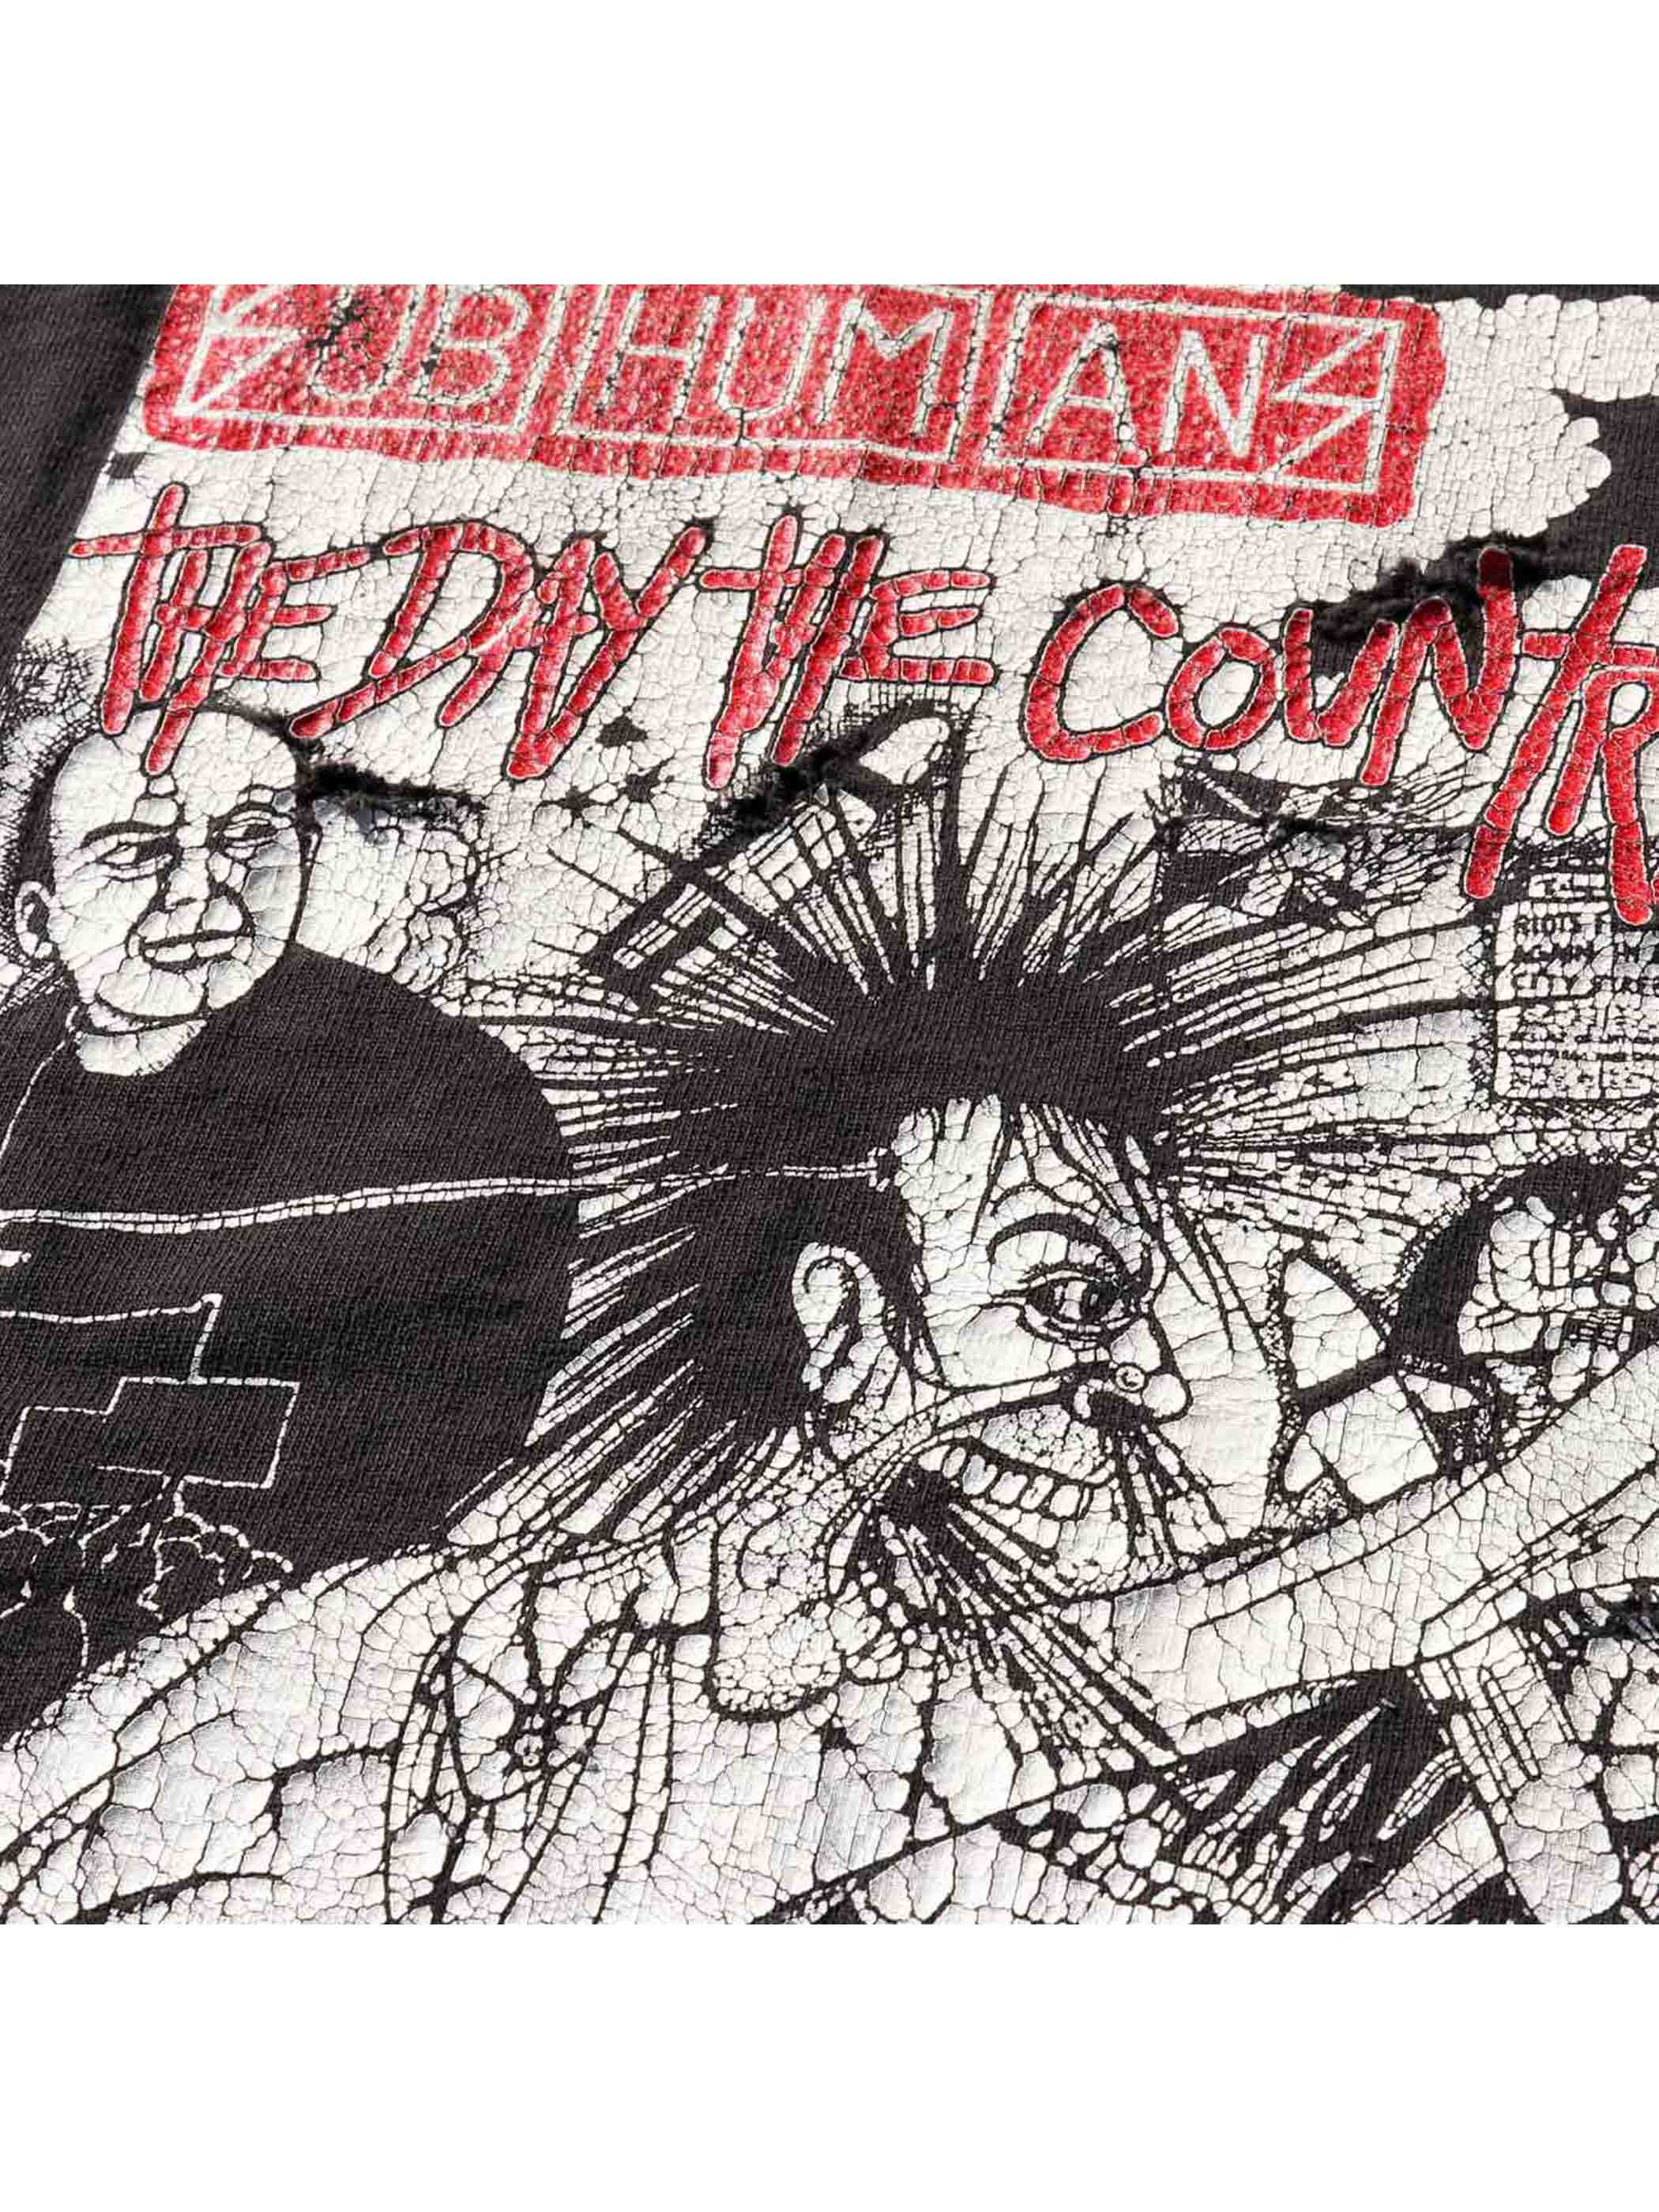 "90's SUBHUMANS ""THE DAY THE COUNTRY DIED"" ダメージTシャツ [XL]"